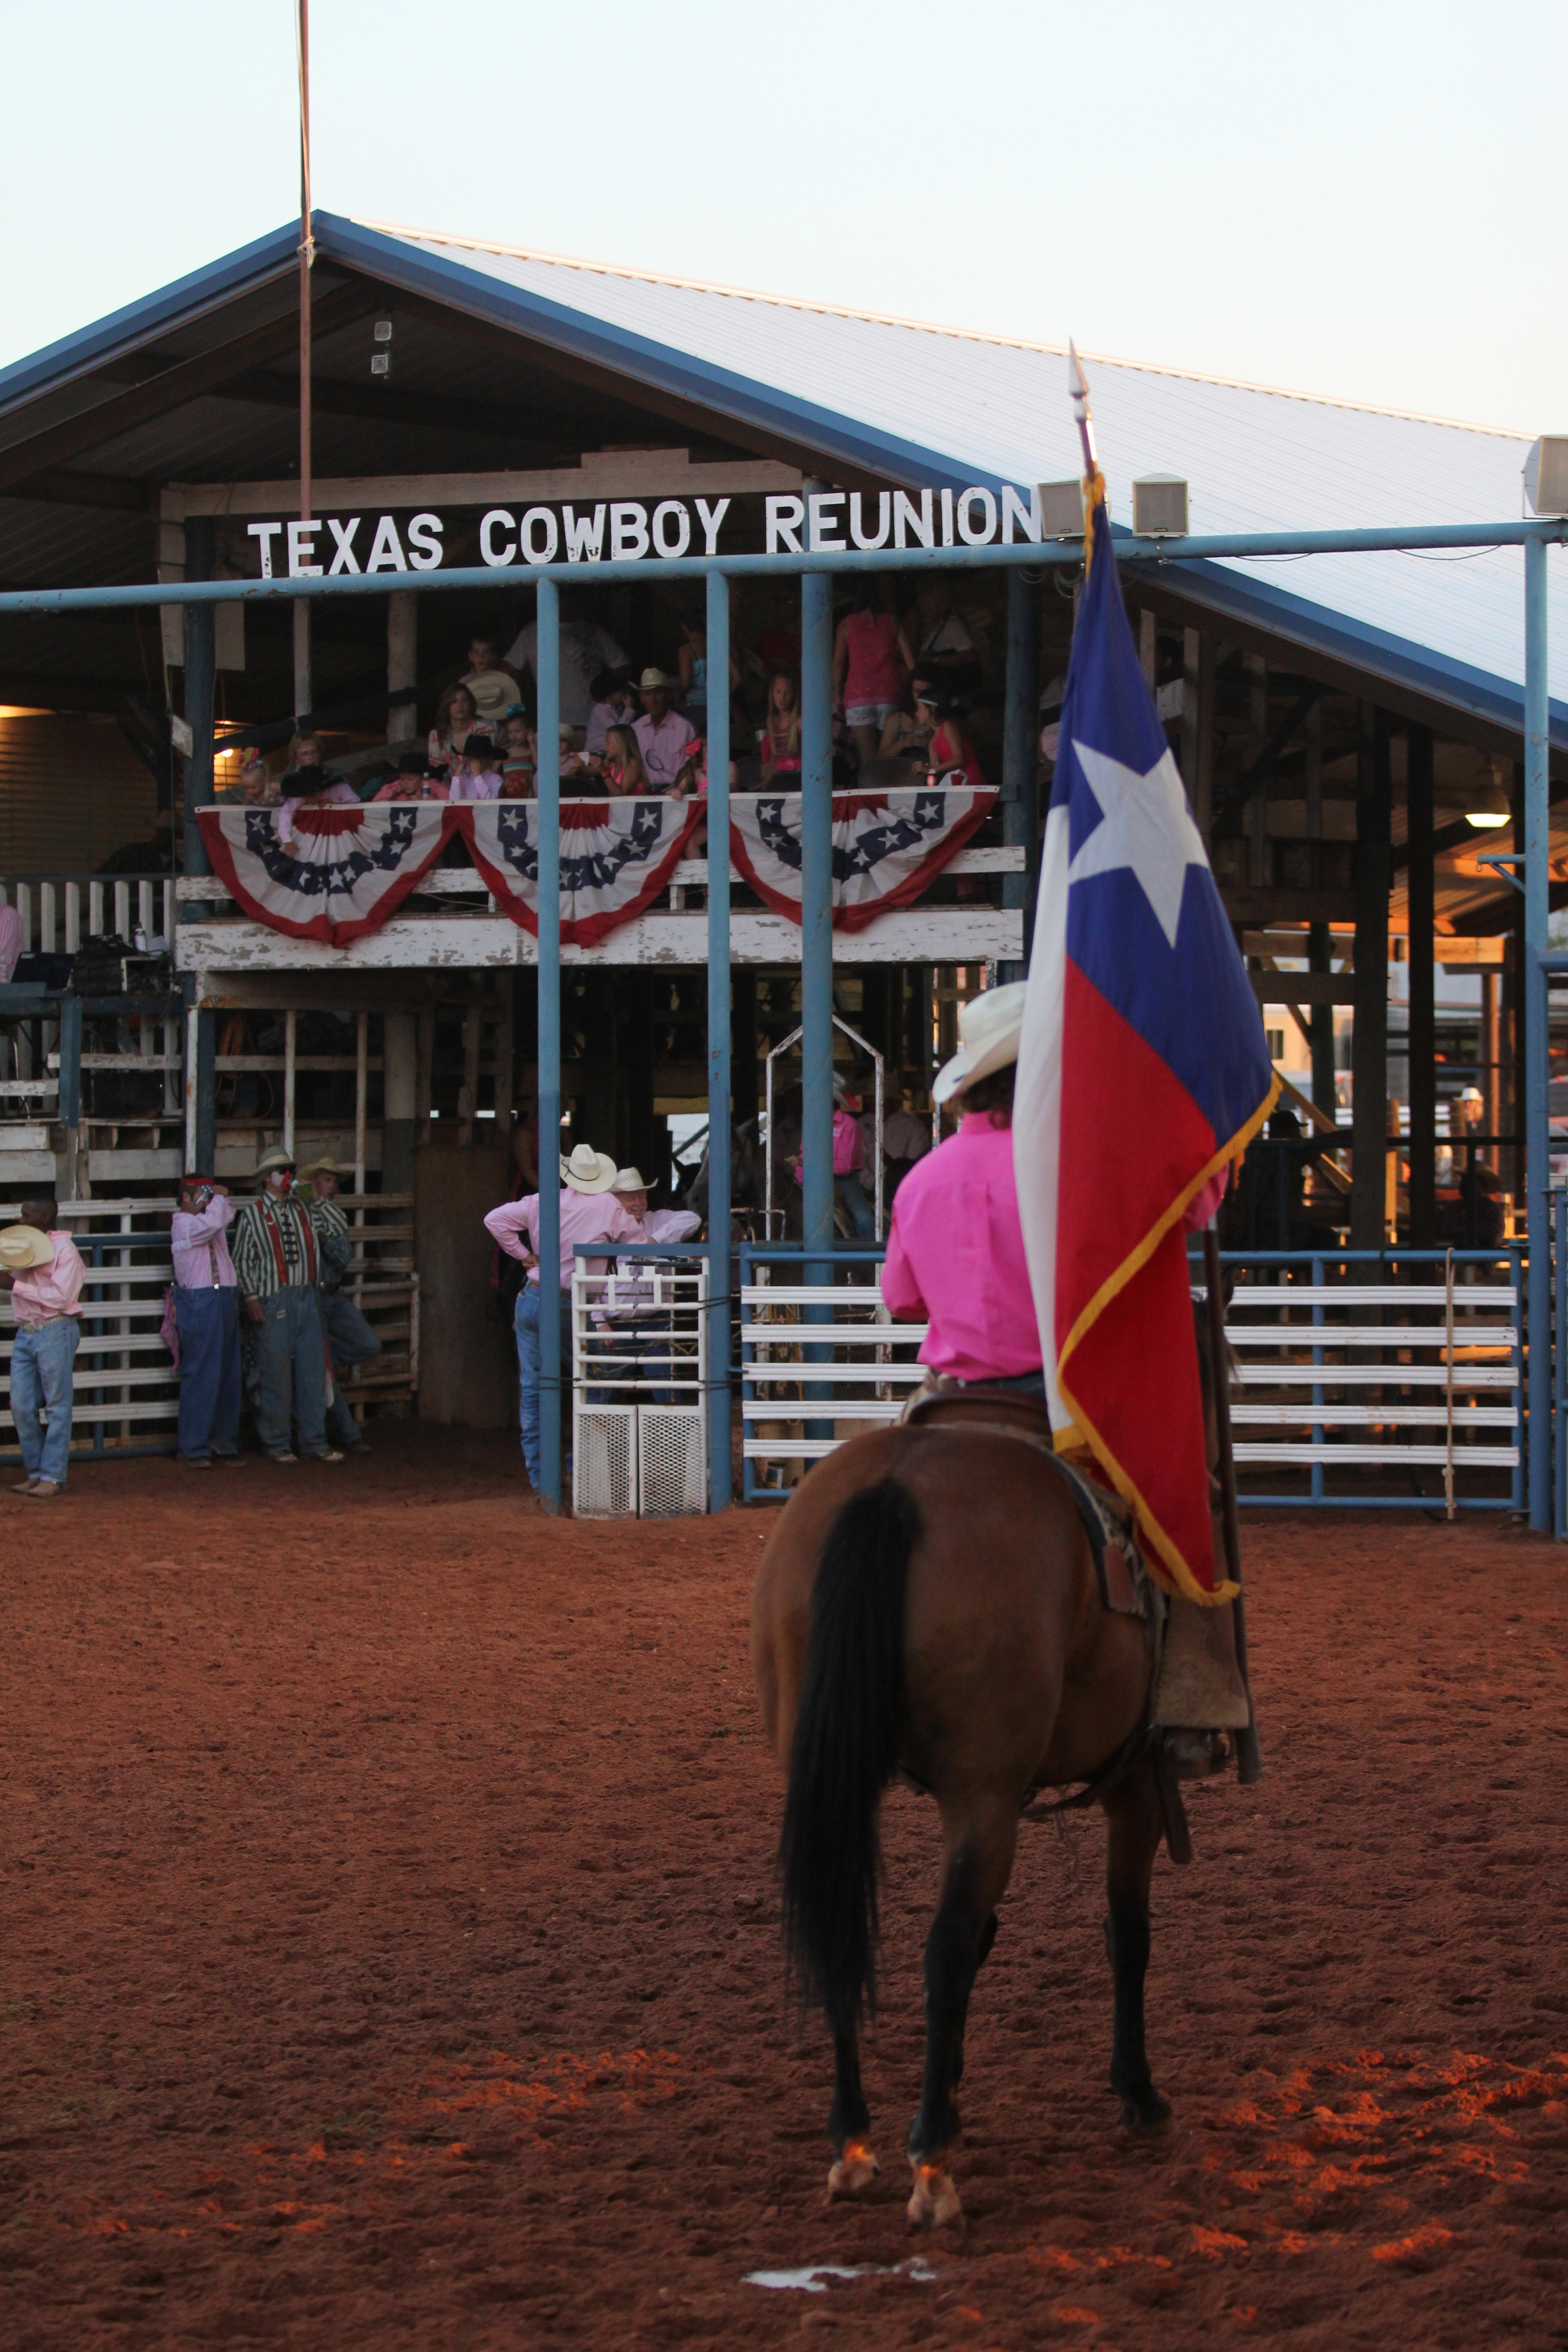 Actor has Amateur rodeo association and texas